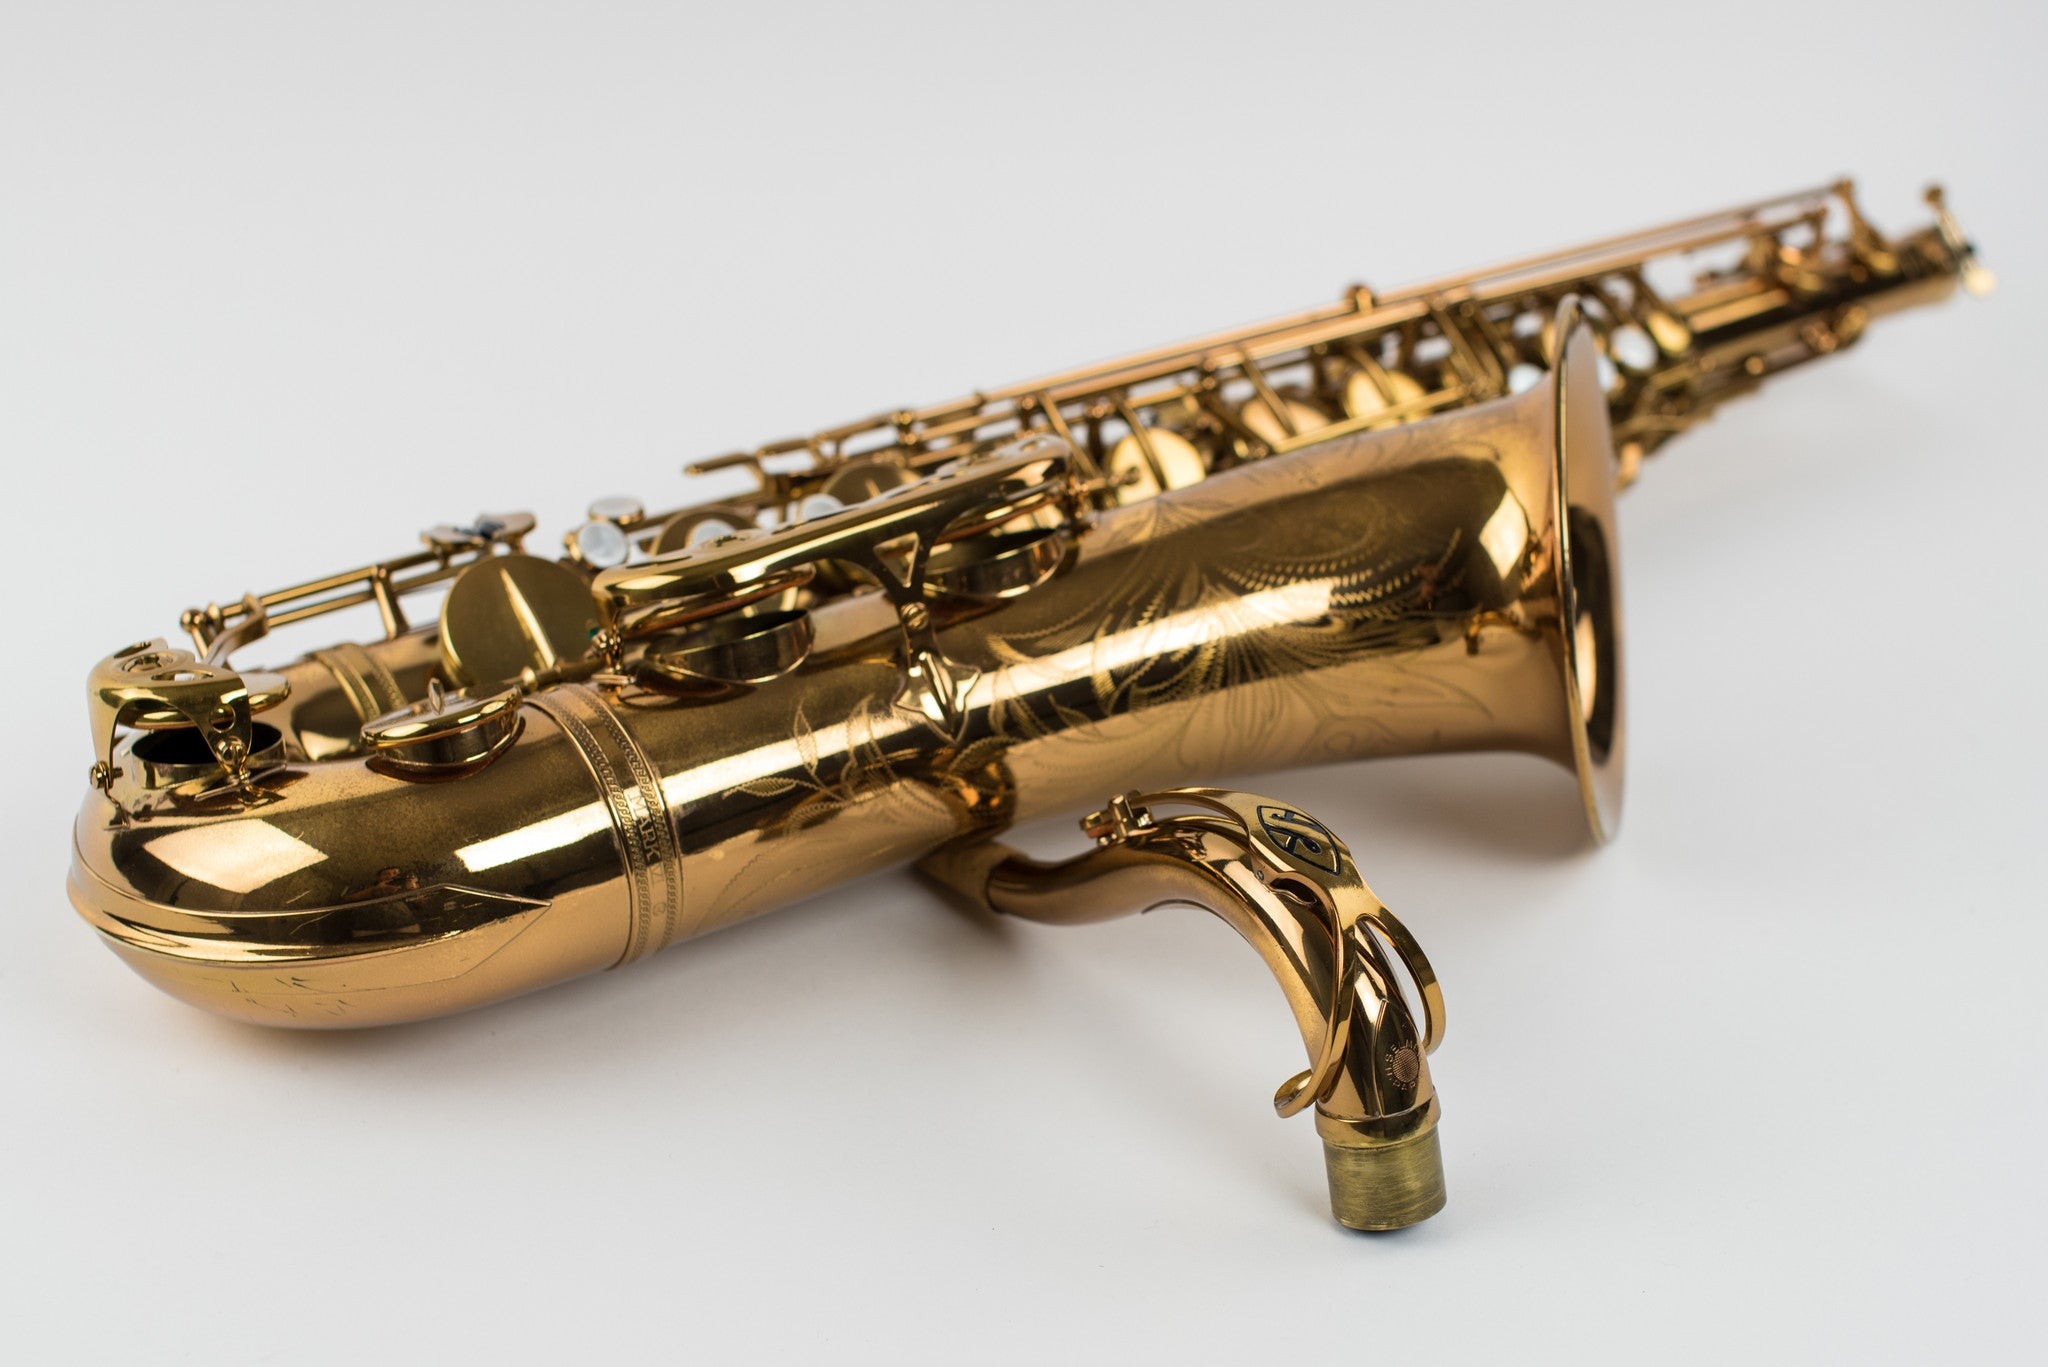 1961 93,xxx Selmer Mark VI Tenor Saxophone, 99.9% Original Lacquer, High F#